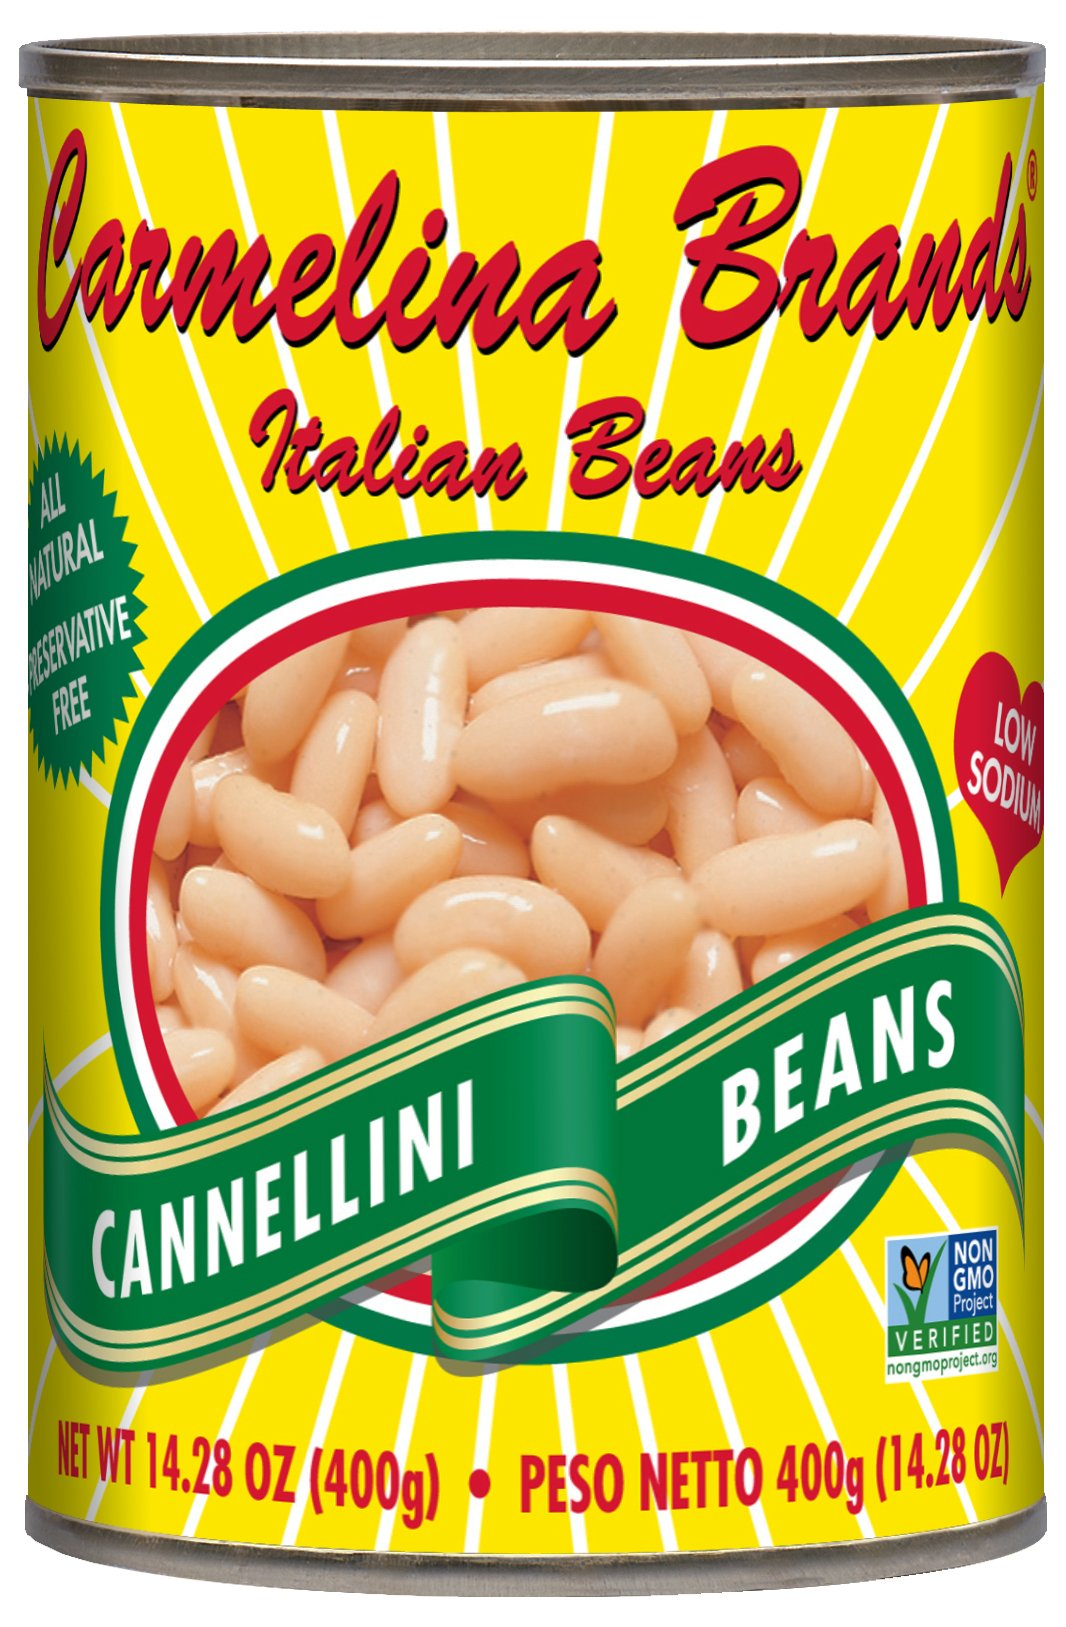 Carmelina Brands Italian Cannellini Beans (White Beans), 14.28 ounce (Pack of 12)